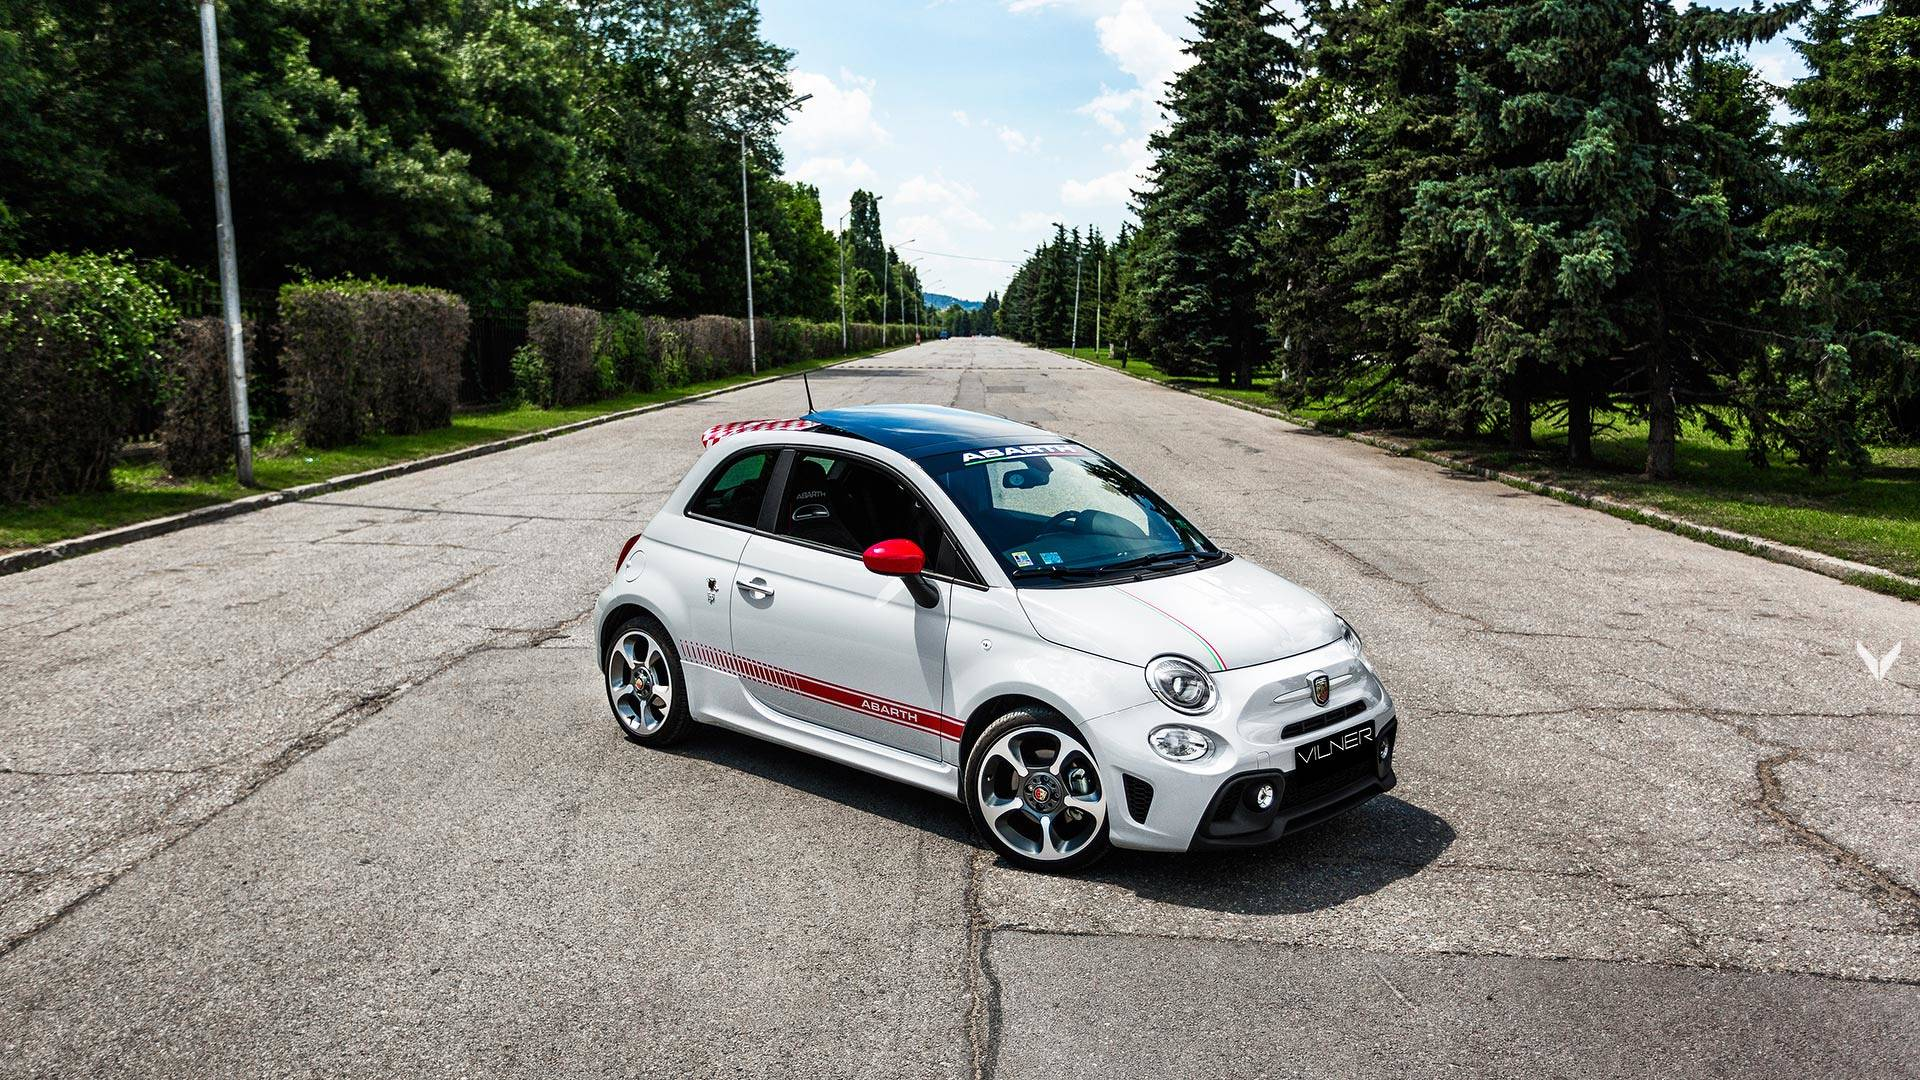 Aftermarket / Tuning - Fiat News and Trends | Motor1.com